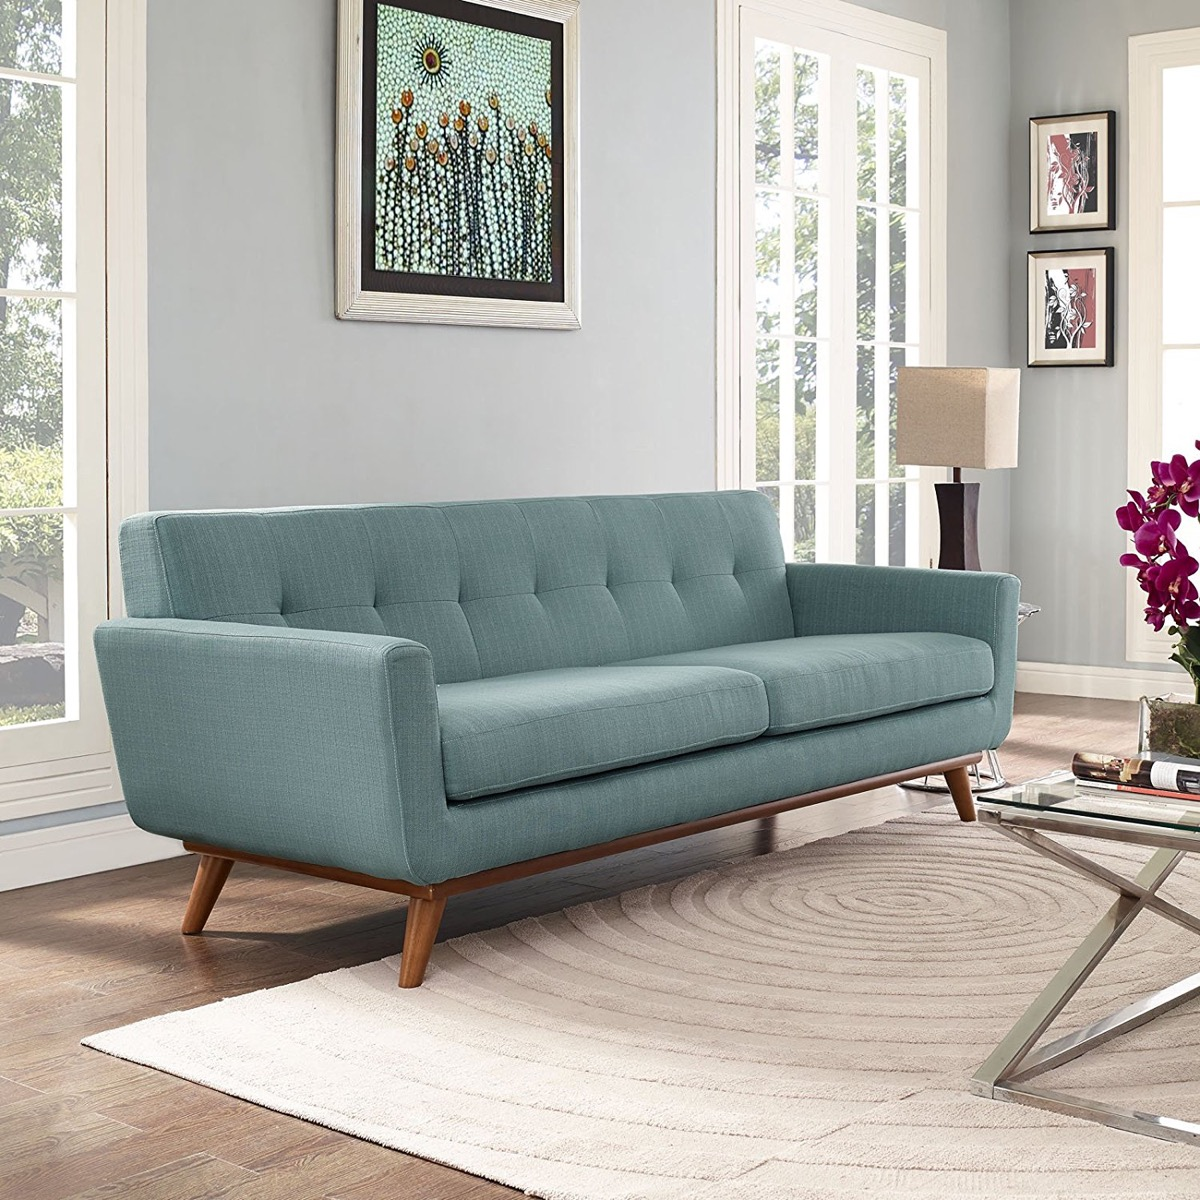 Mid Century Modern Sofas: 30 Mid-Century Modern Sofas That Make Your Lounge Look The Era